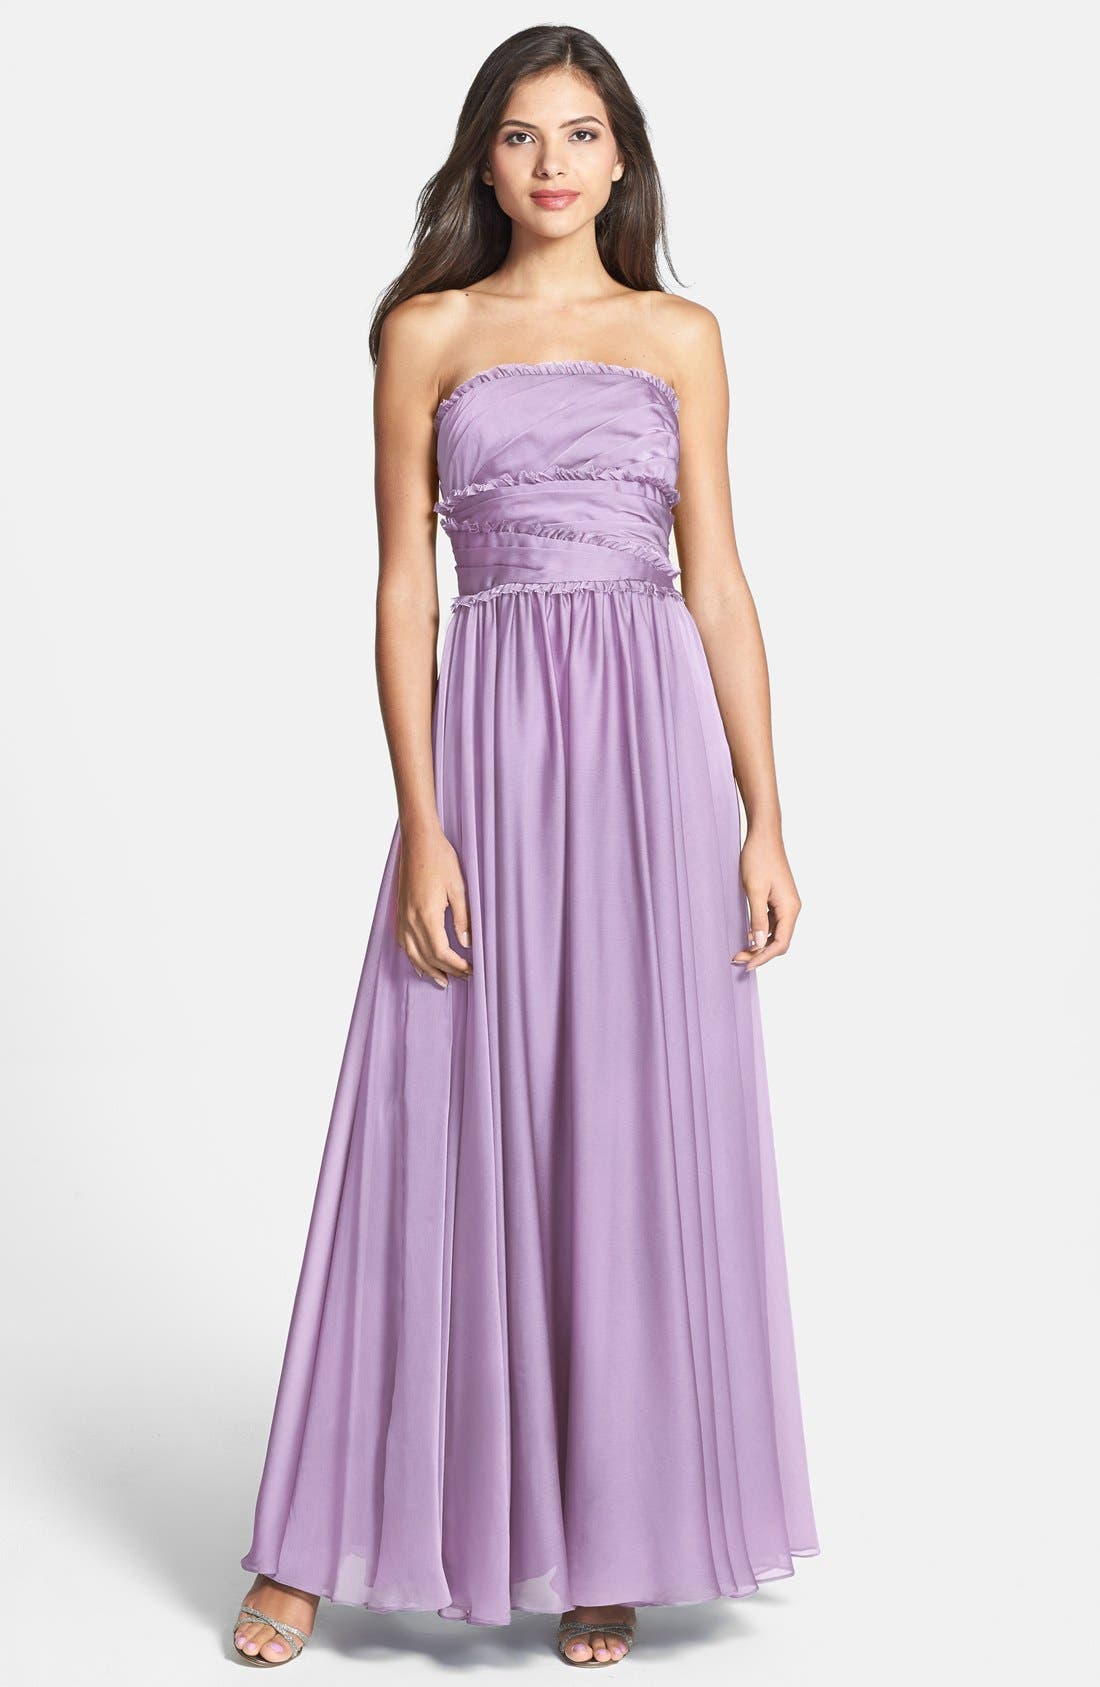 ML Monique Lhuillier Bridesmaids Strapless Chiffon Gown,                             Main thumbnail 14, color,